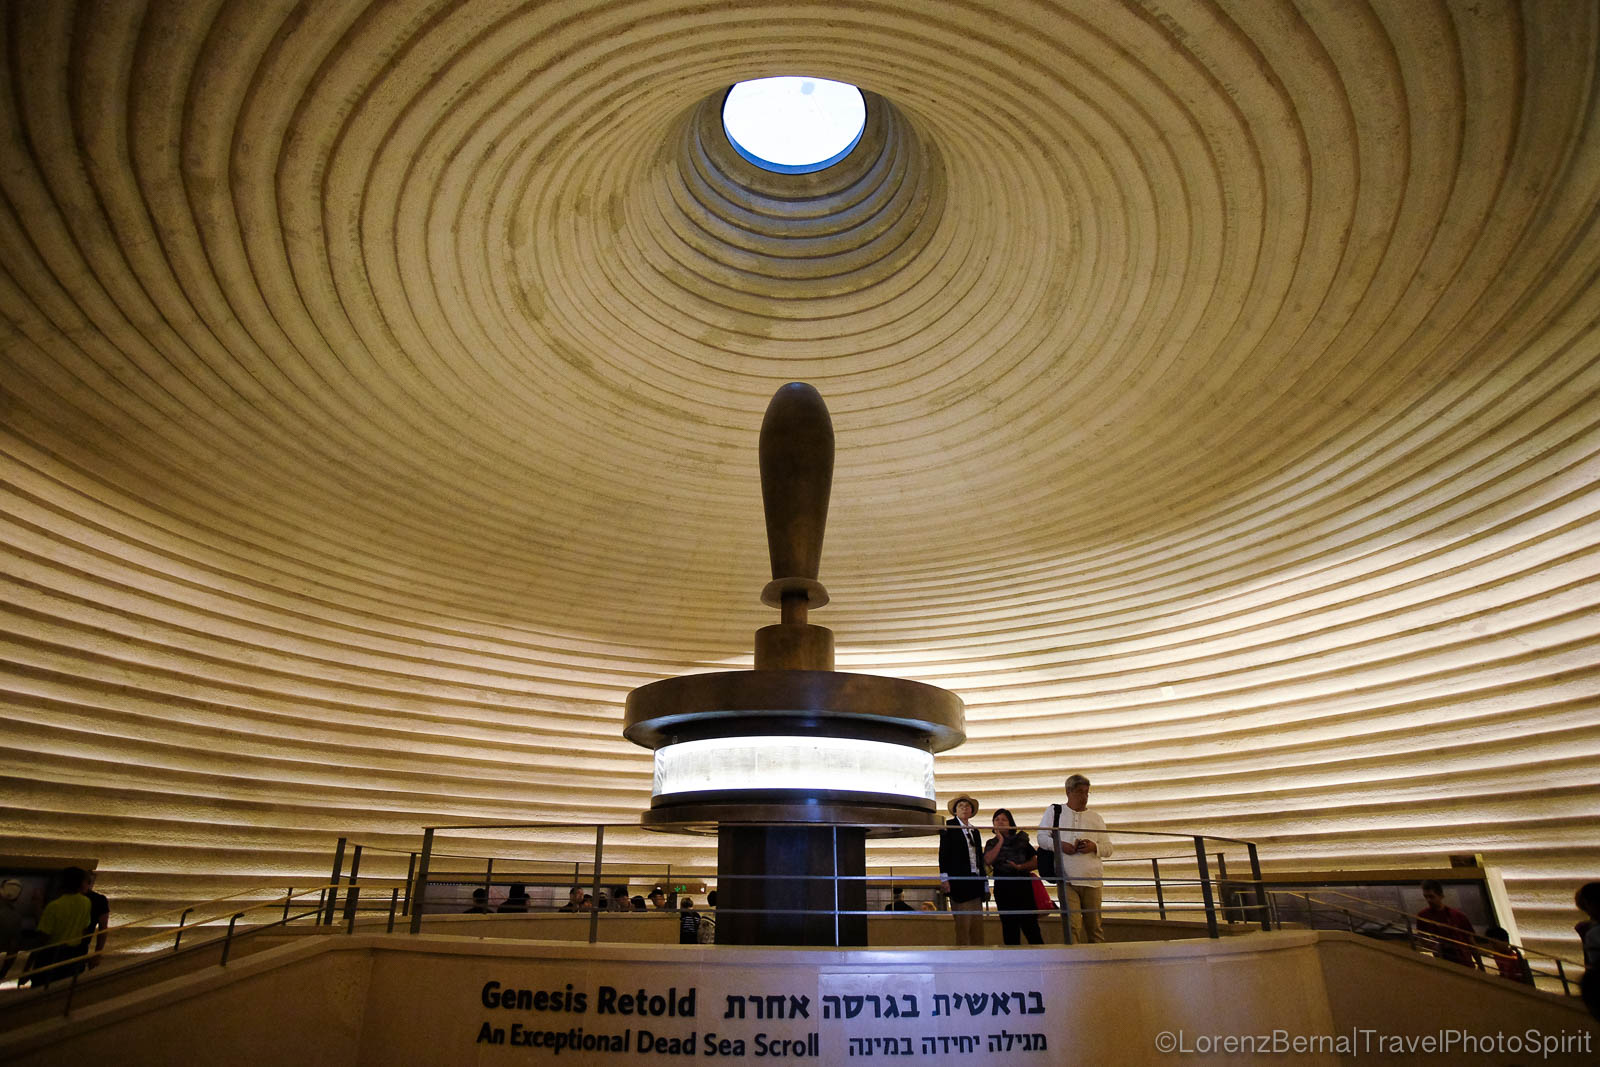 Inside the Shrine of the Book, Jerusalem, Israel.